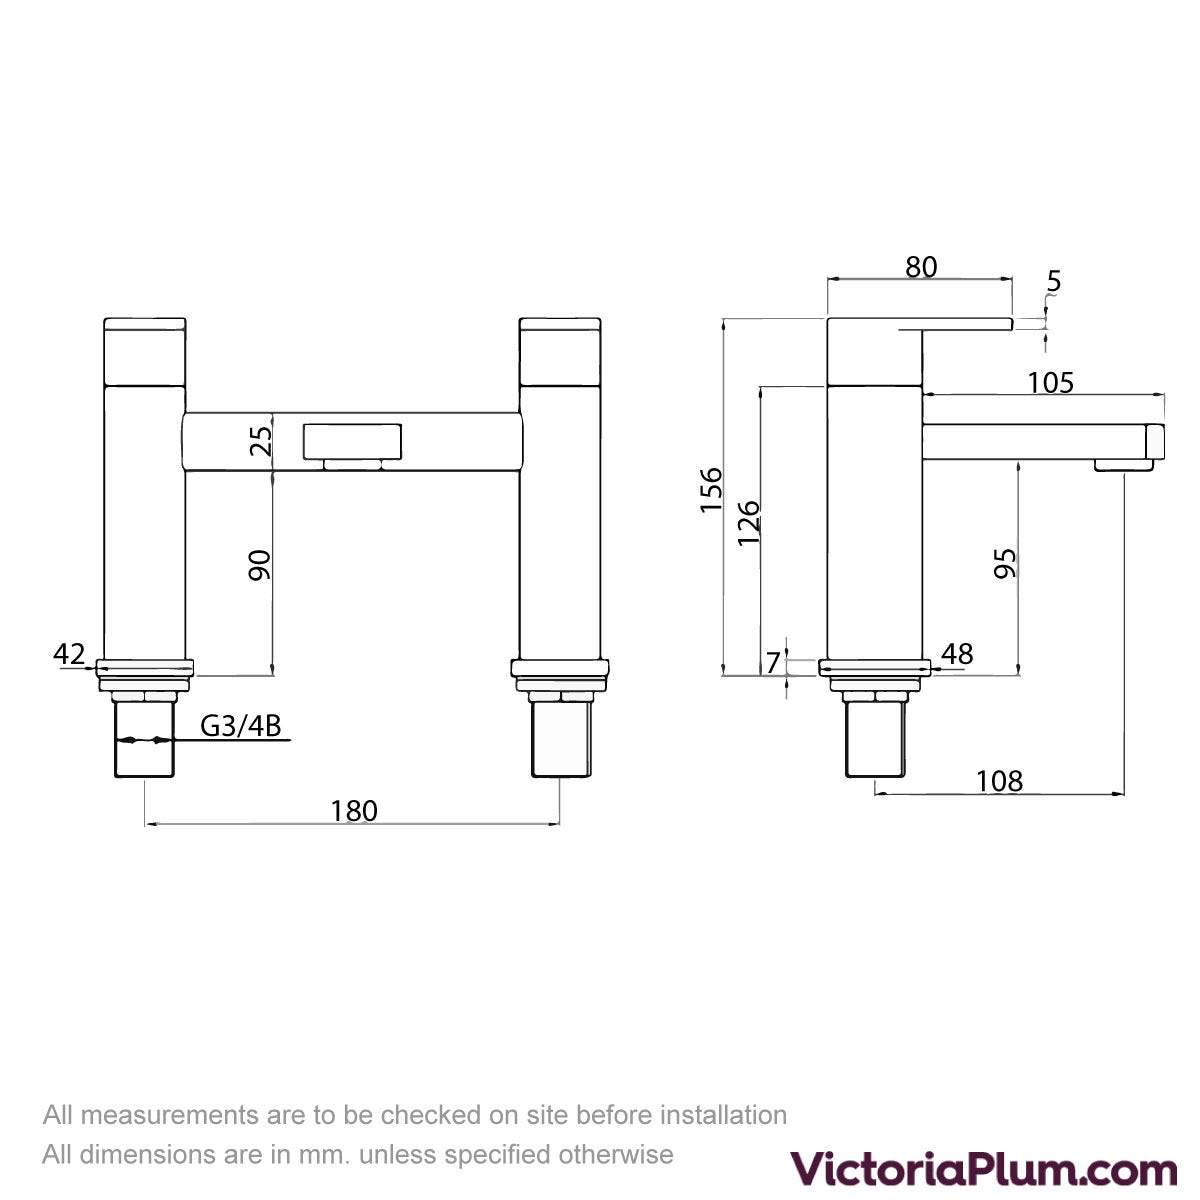 Dimensions for Kirke Connect bath mixer tap